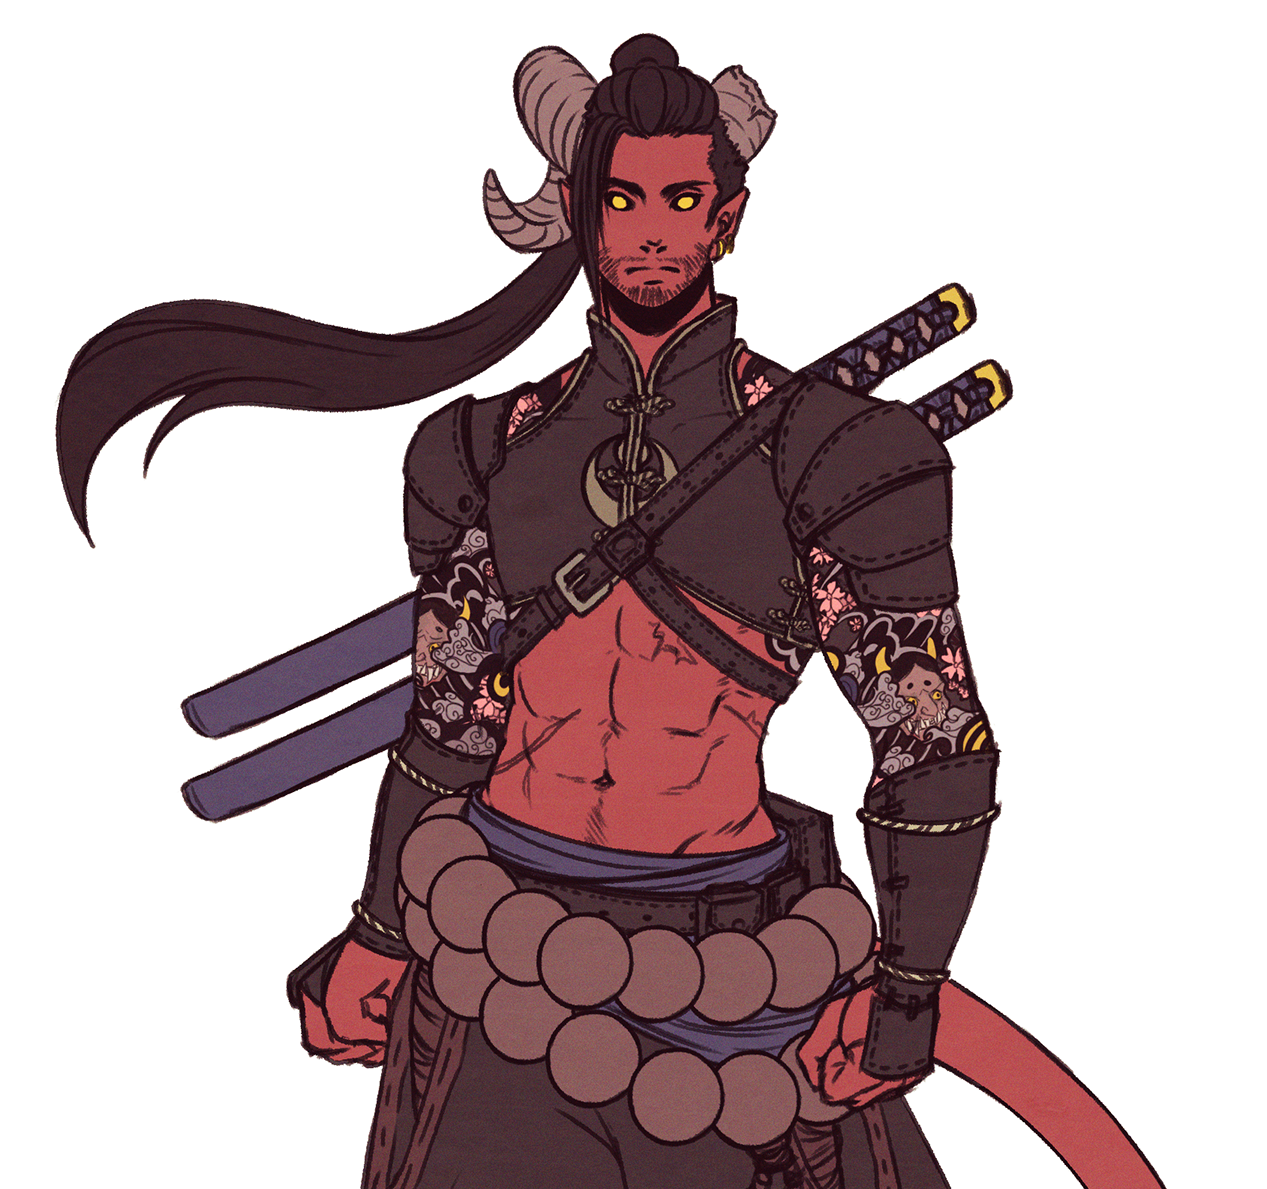 Xib I Redesigned Tempest My Tiefling Rogue After Th Mastodon Art